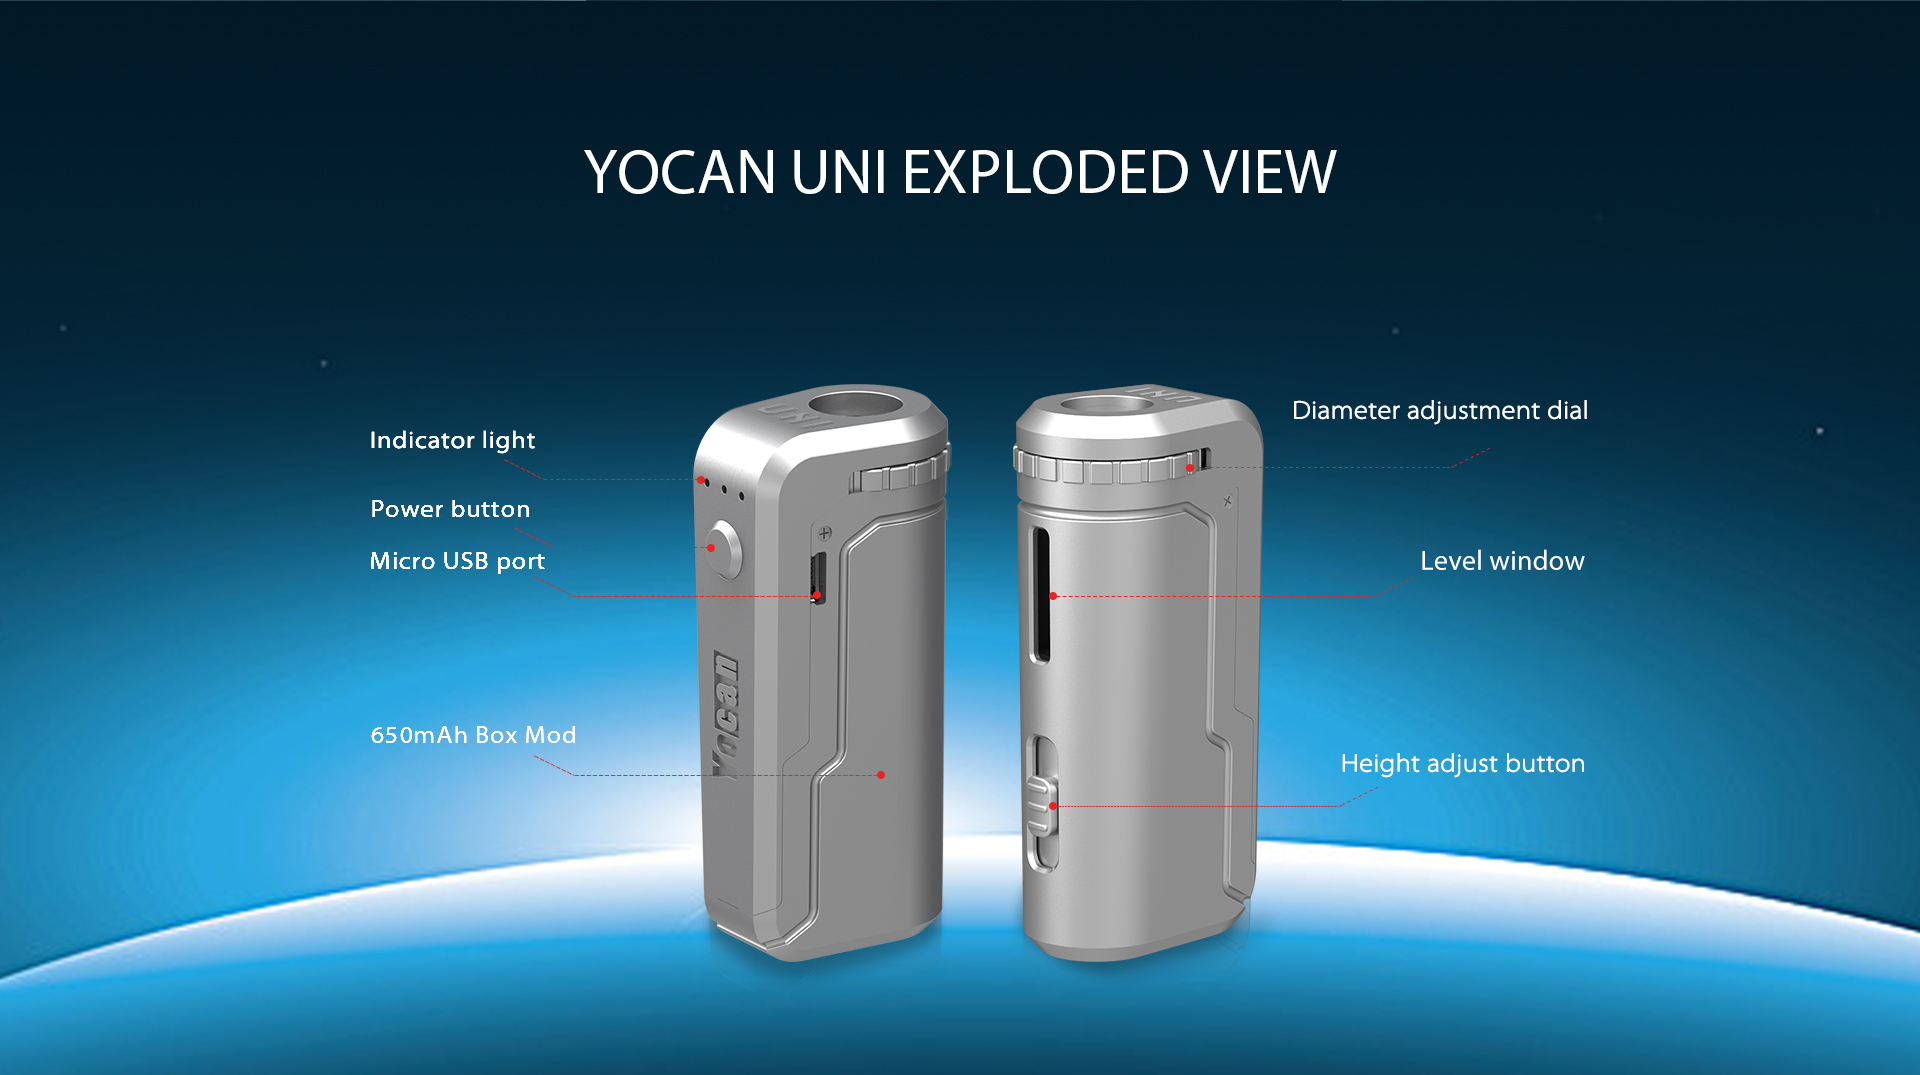 Yocan UNI exploded view.